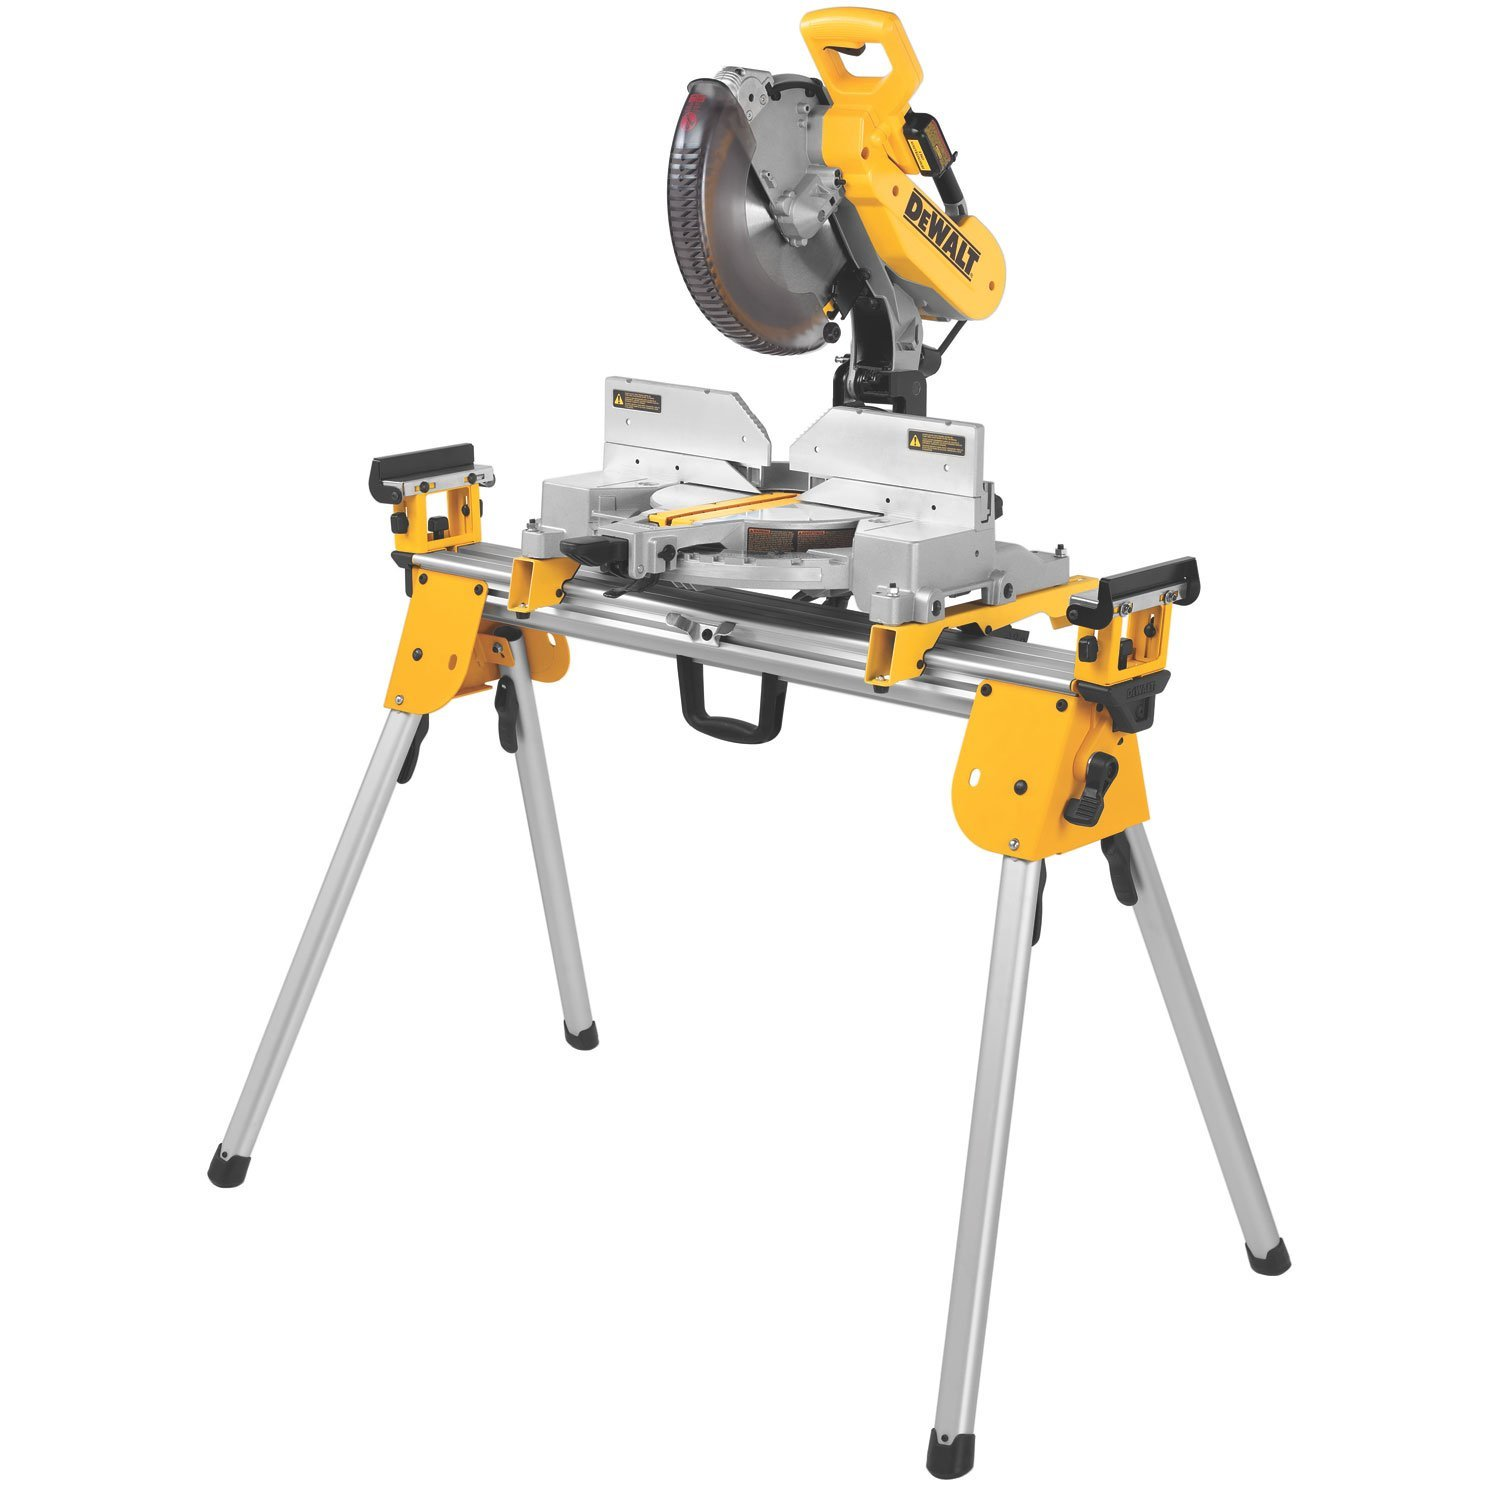 The Best Dewalt Dwx724 Compact Miter Saw Stand Review